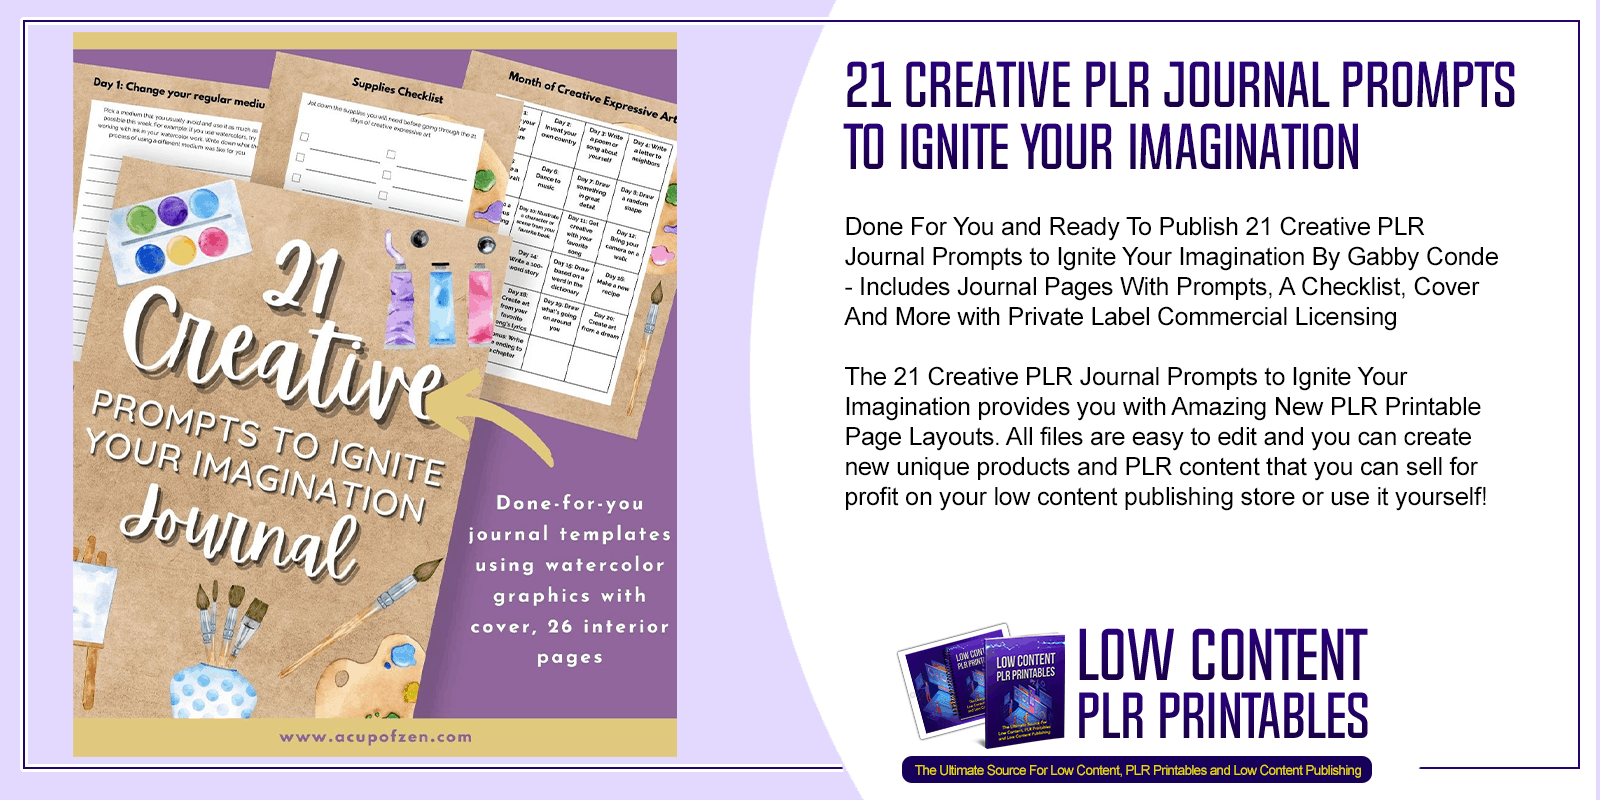 21 Creative PLR Journal Prompts to Ignite Your Imagination